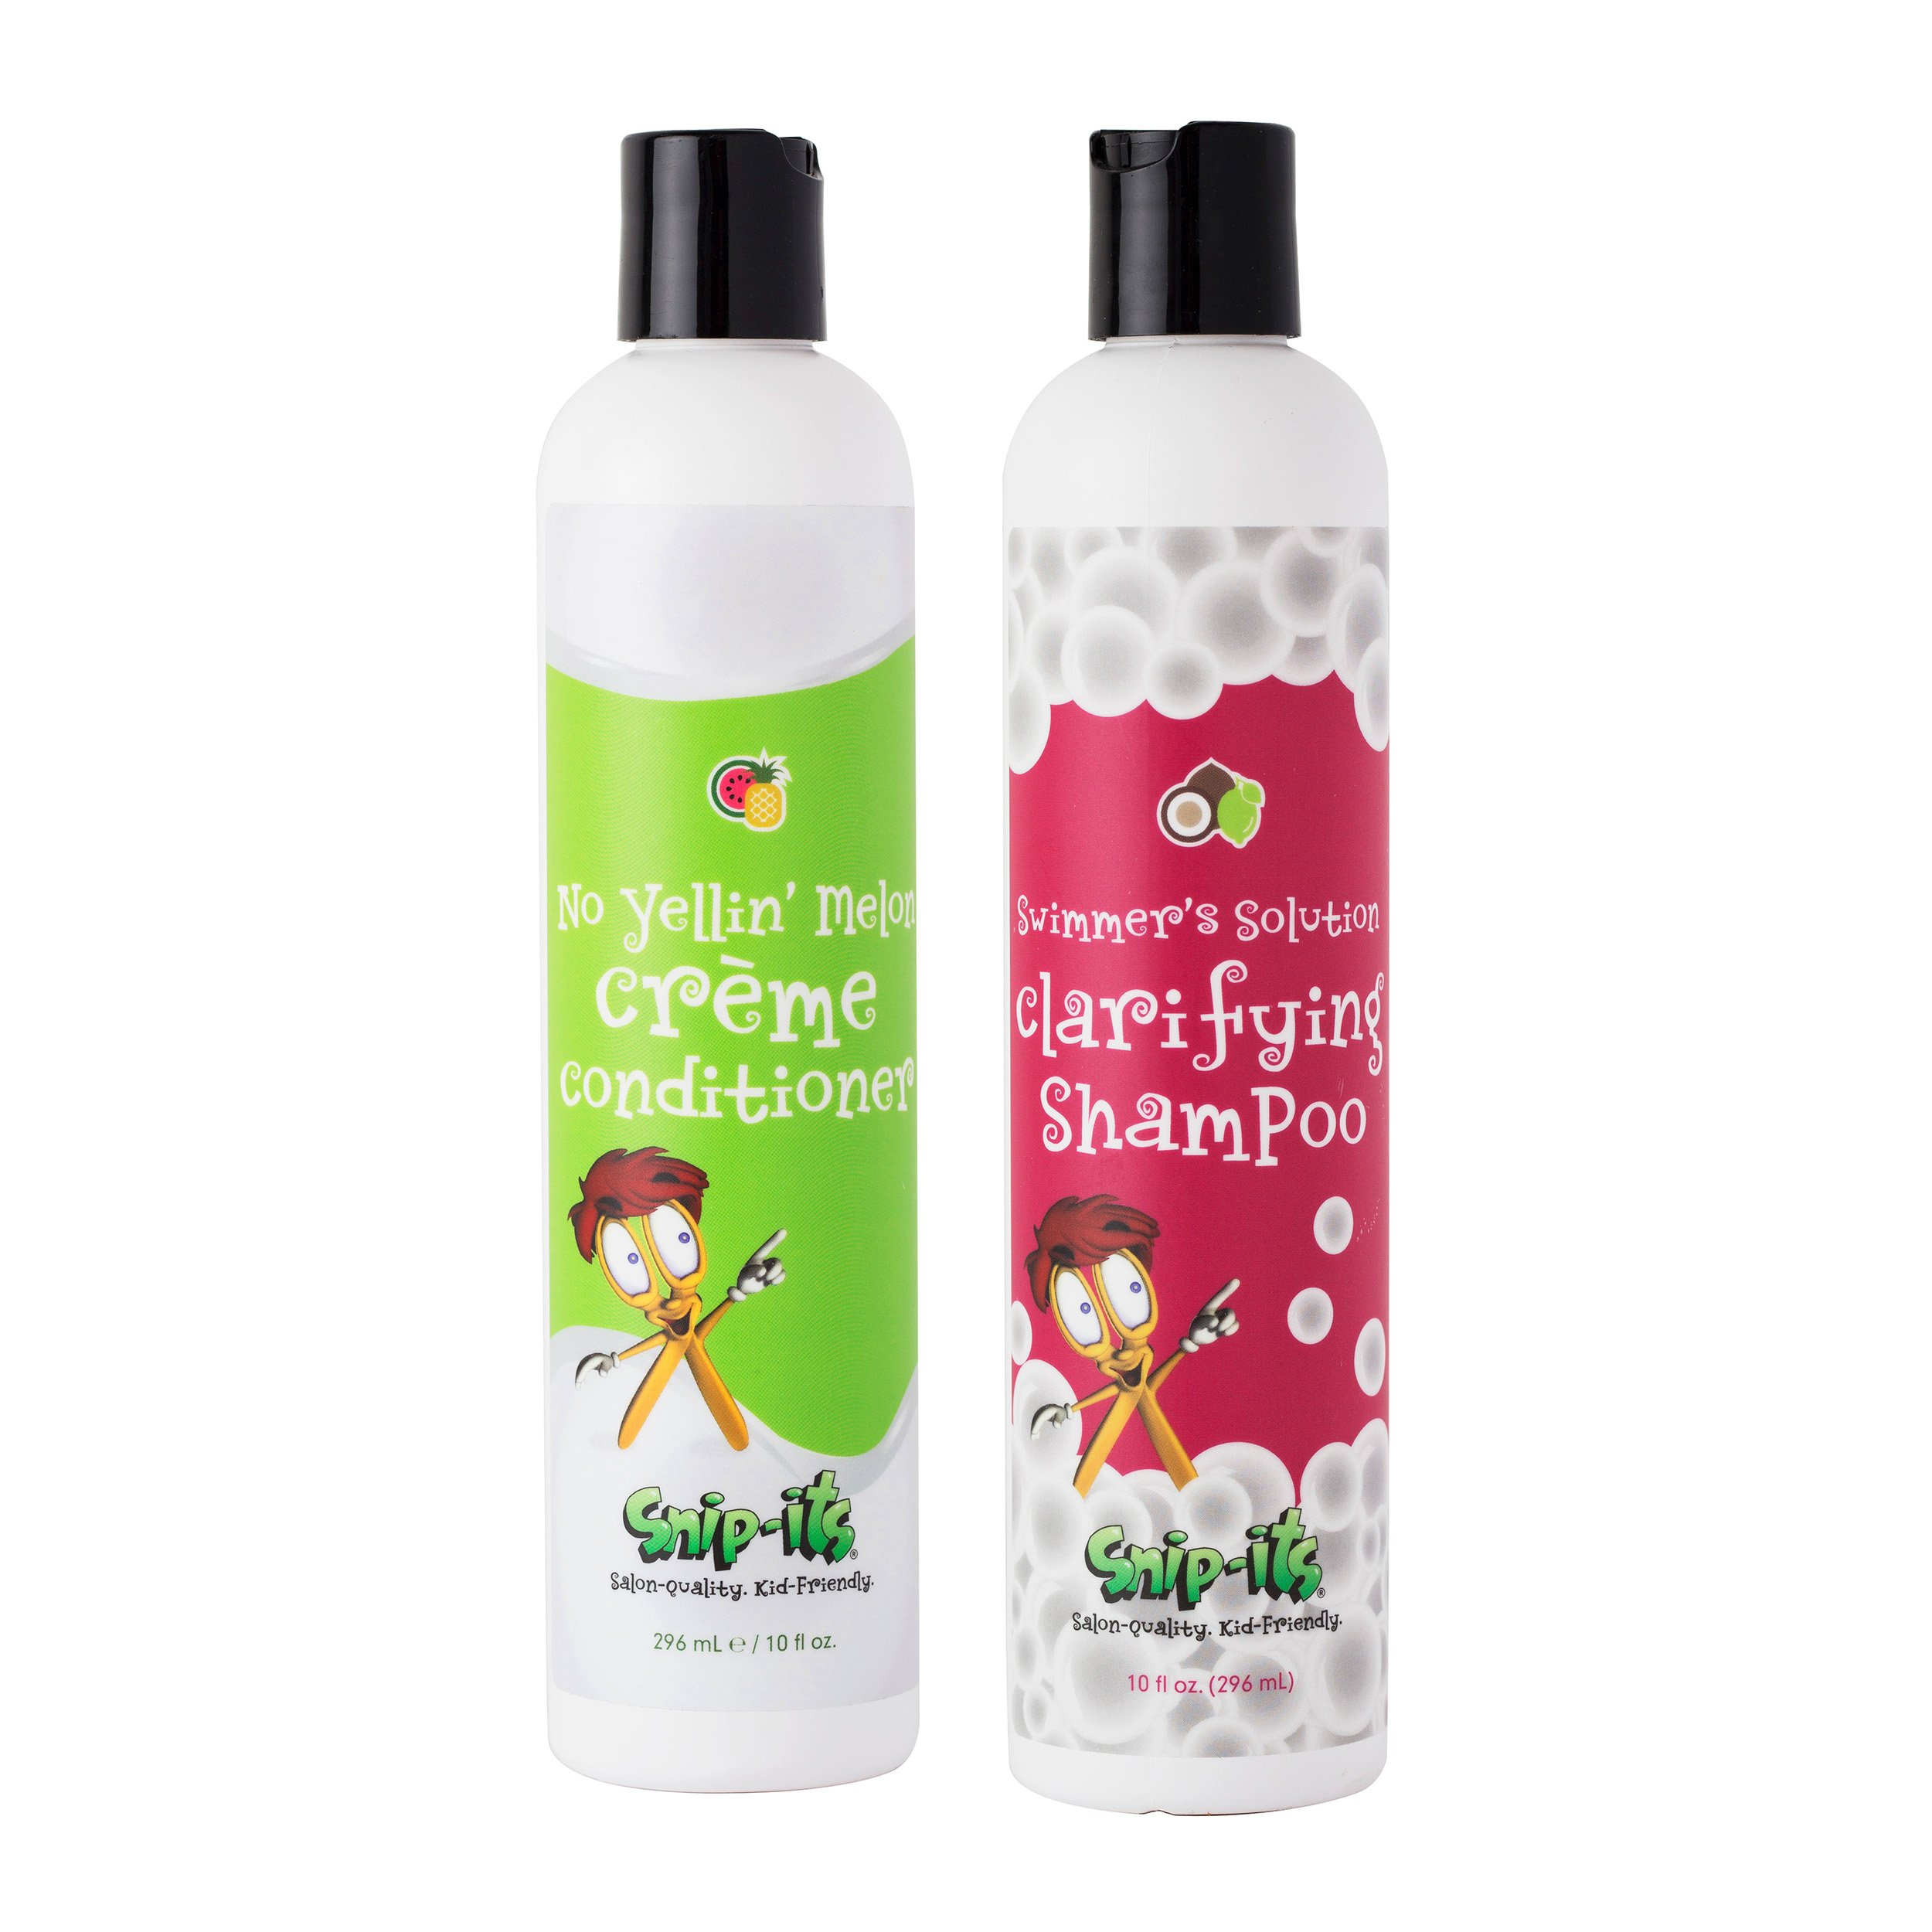 Snip-its Natural Shampoo and Conditioner for Kids   Swimmers Clarifying Chlorine Removal and Detangler Conditioner Restore Hair   All Natural Kids Hair Product Made in USA   Salon Quality Kid Friendly by Snip-its